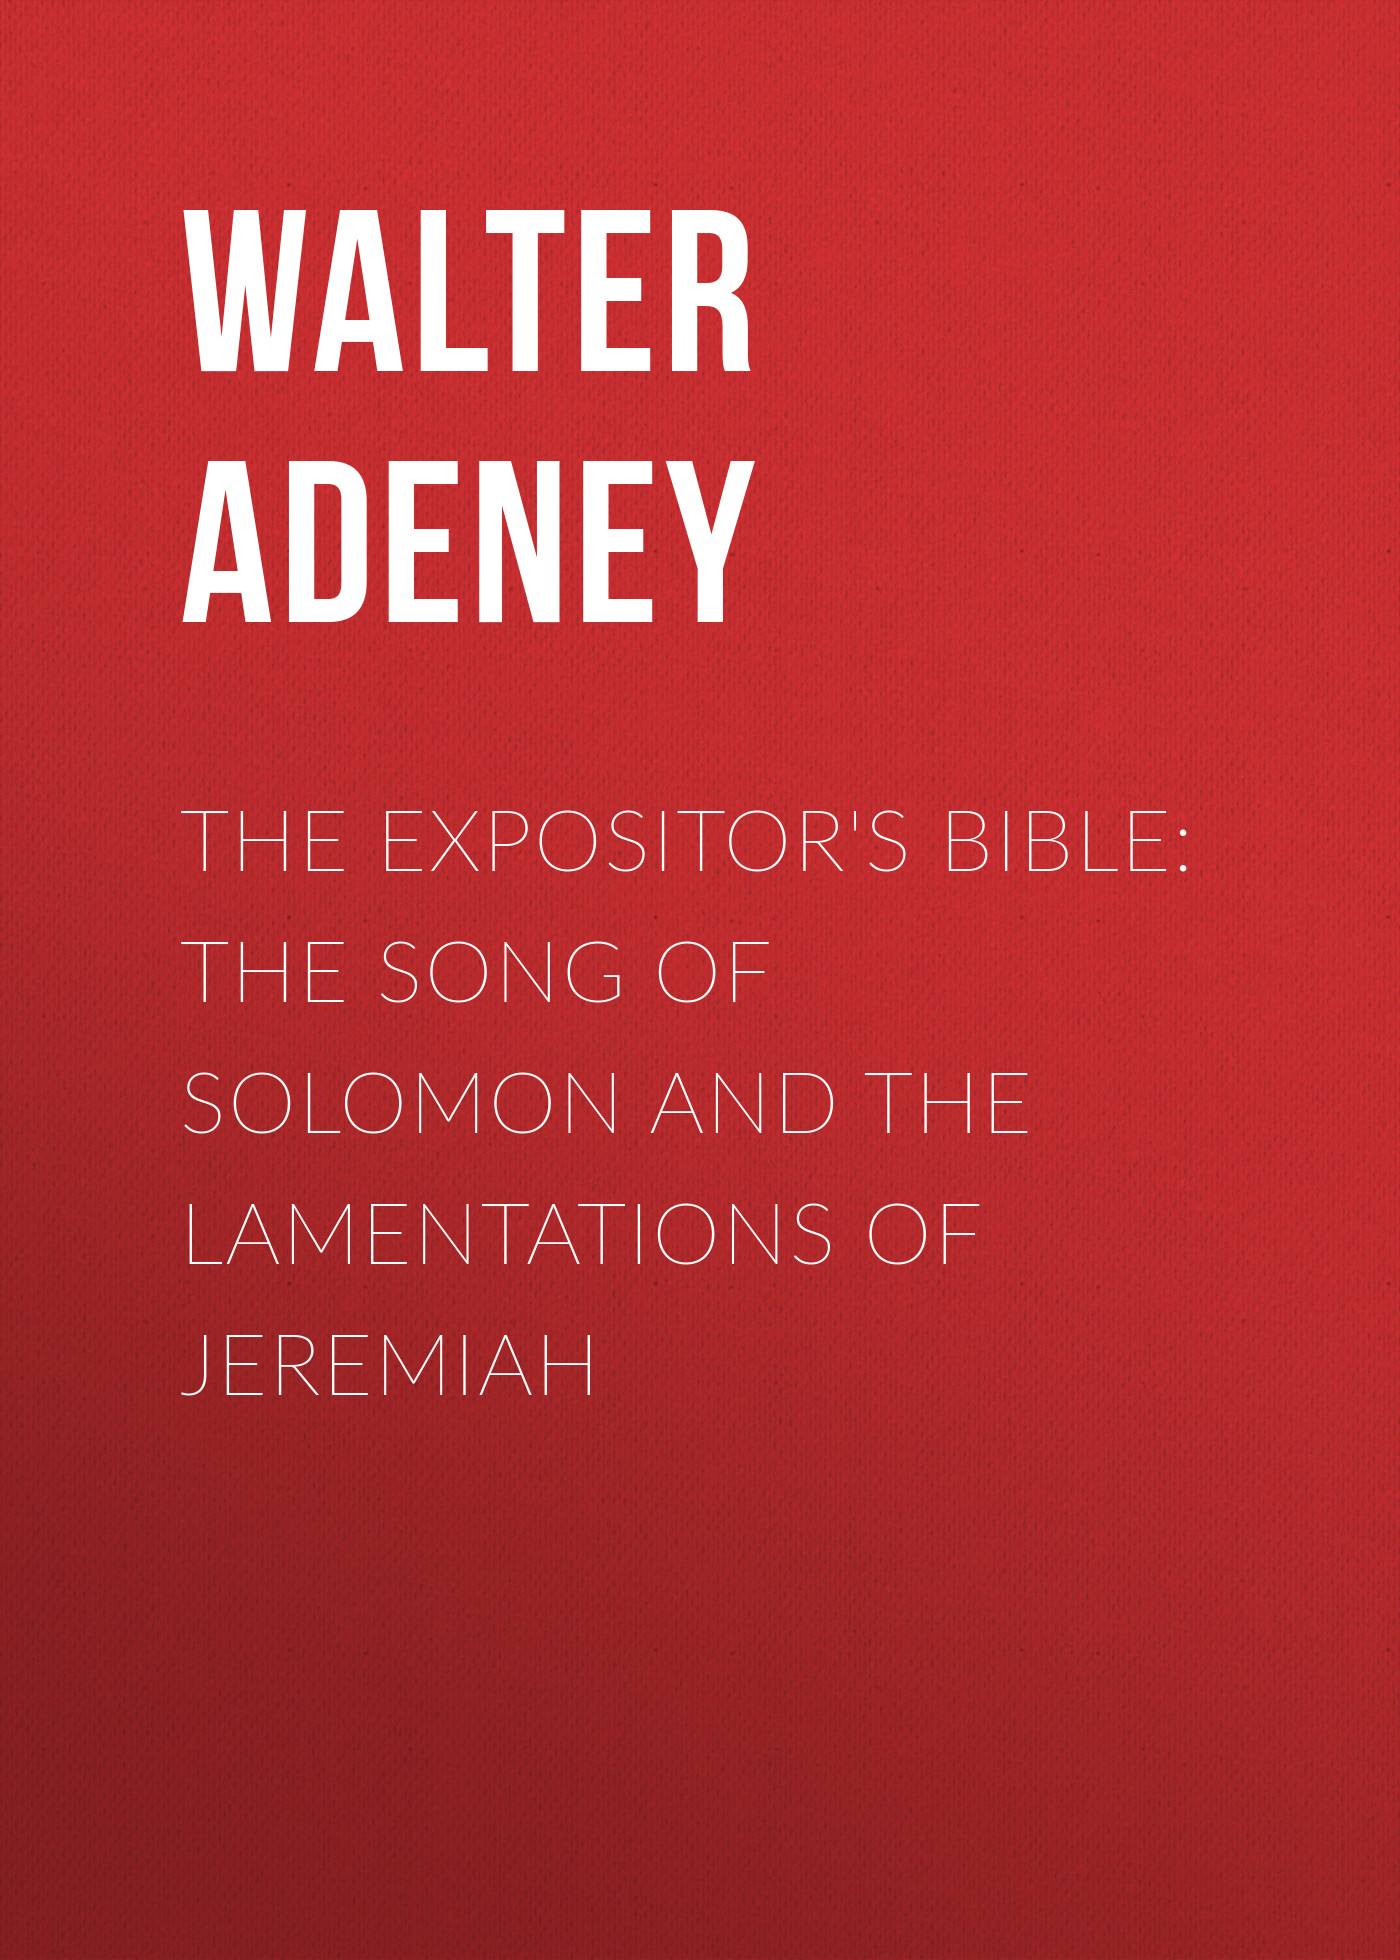 Adeney Walter Frederic The Expositor's Bible: The Song of Solomon and the Lamentations of Jeremiah tim murphey music and song